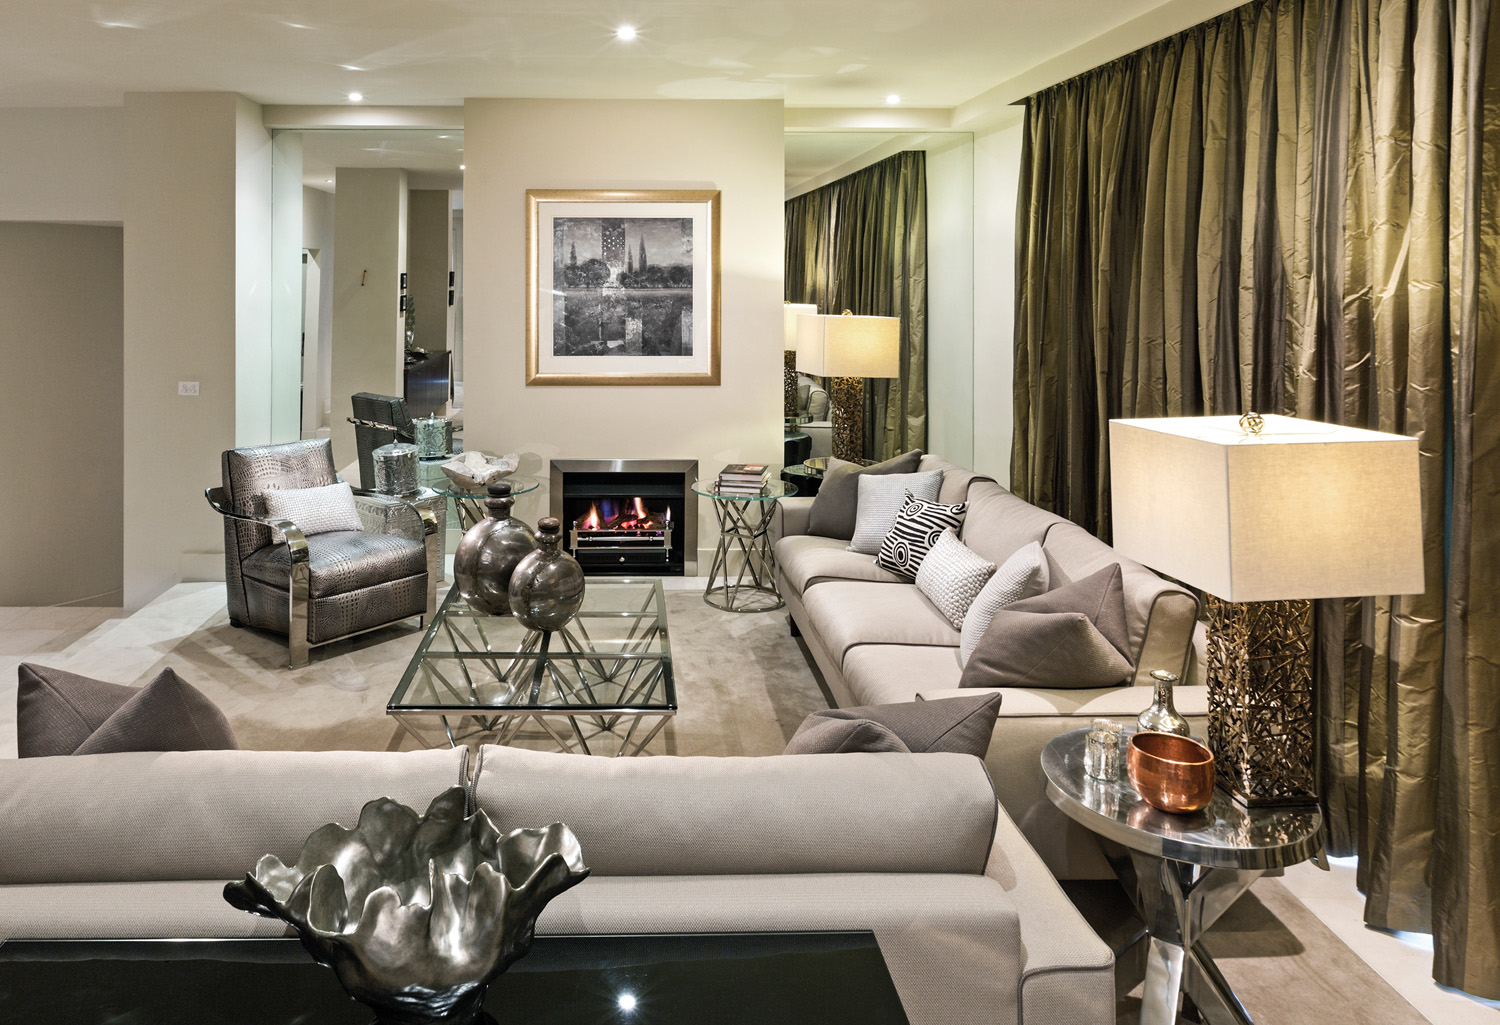 Metallic accents create an opulent living area